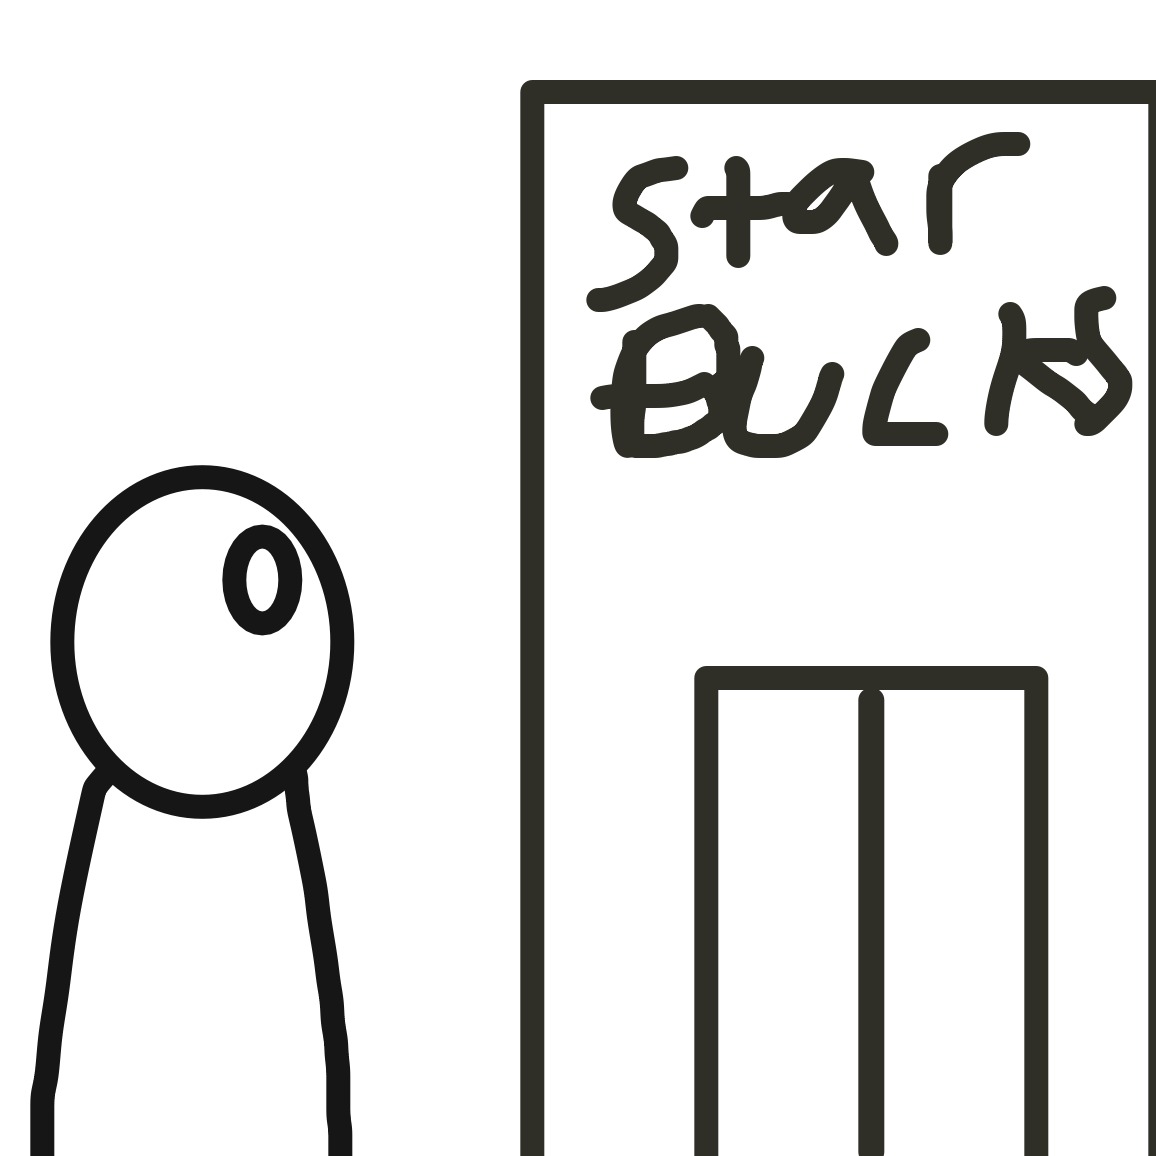 Fuck it star bucks it is - Online Drawing Game Comic Strip Panel by Jack